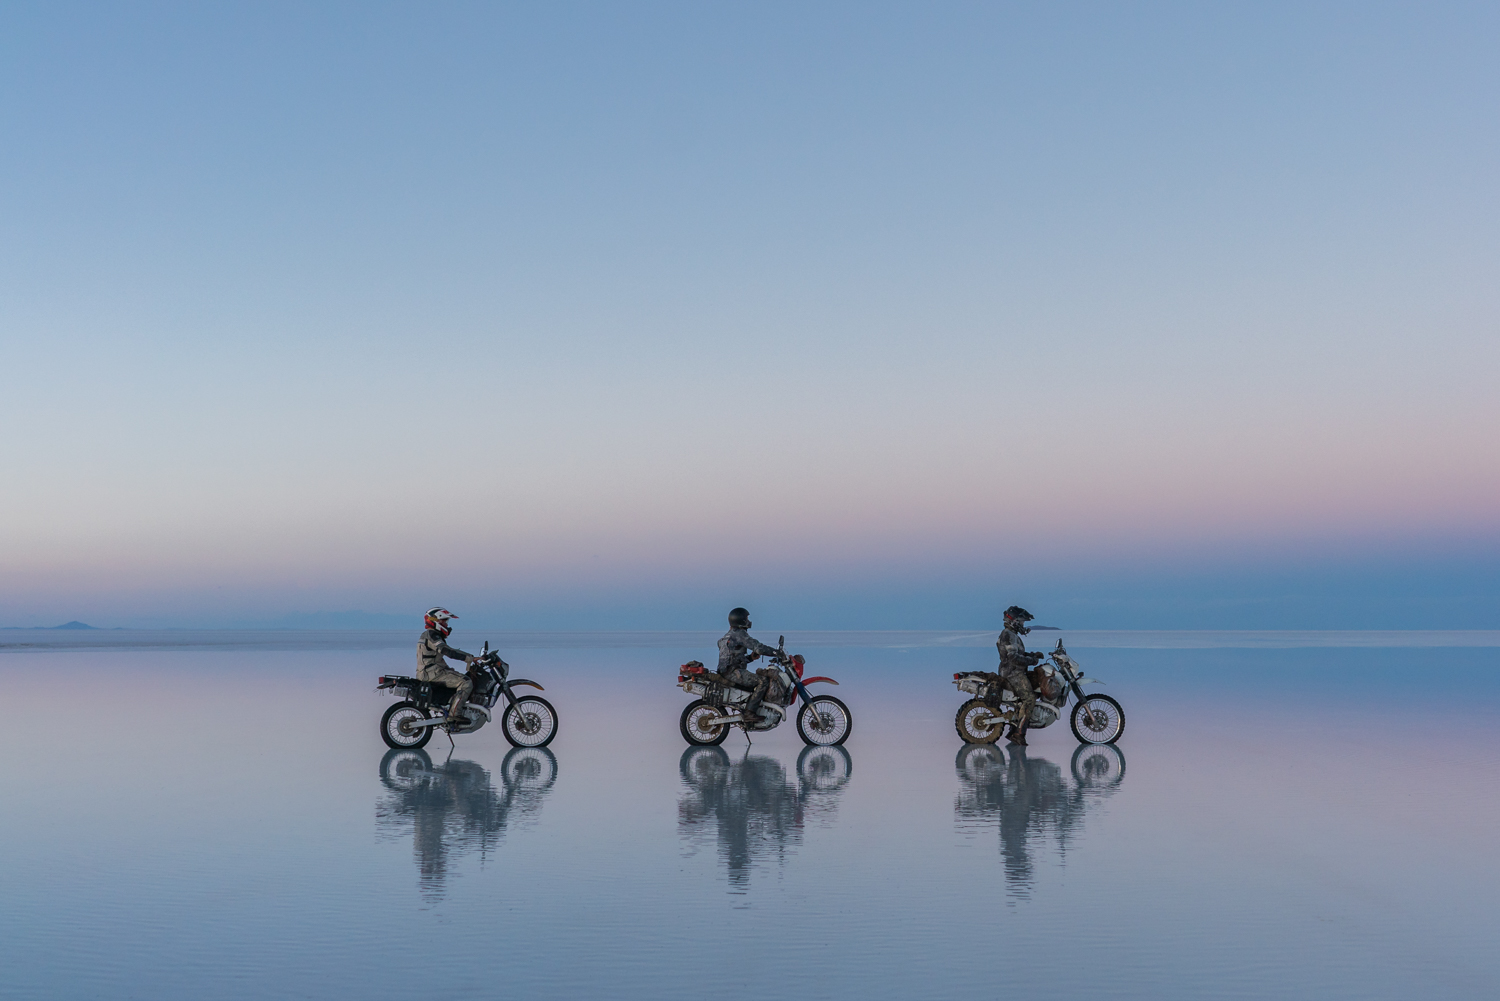 Salt Flats on a Motorcycle